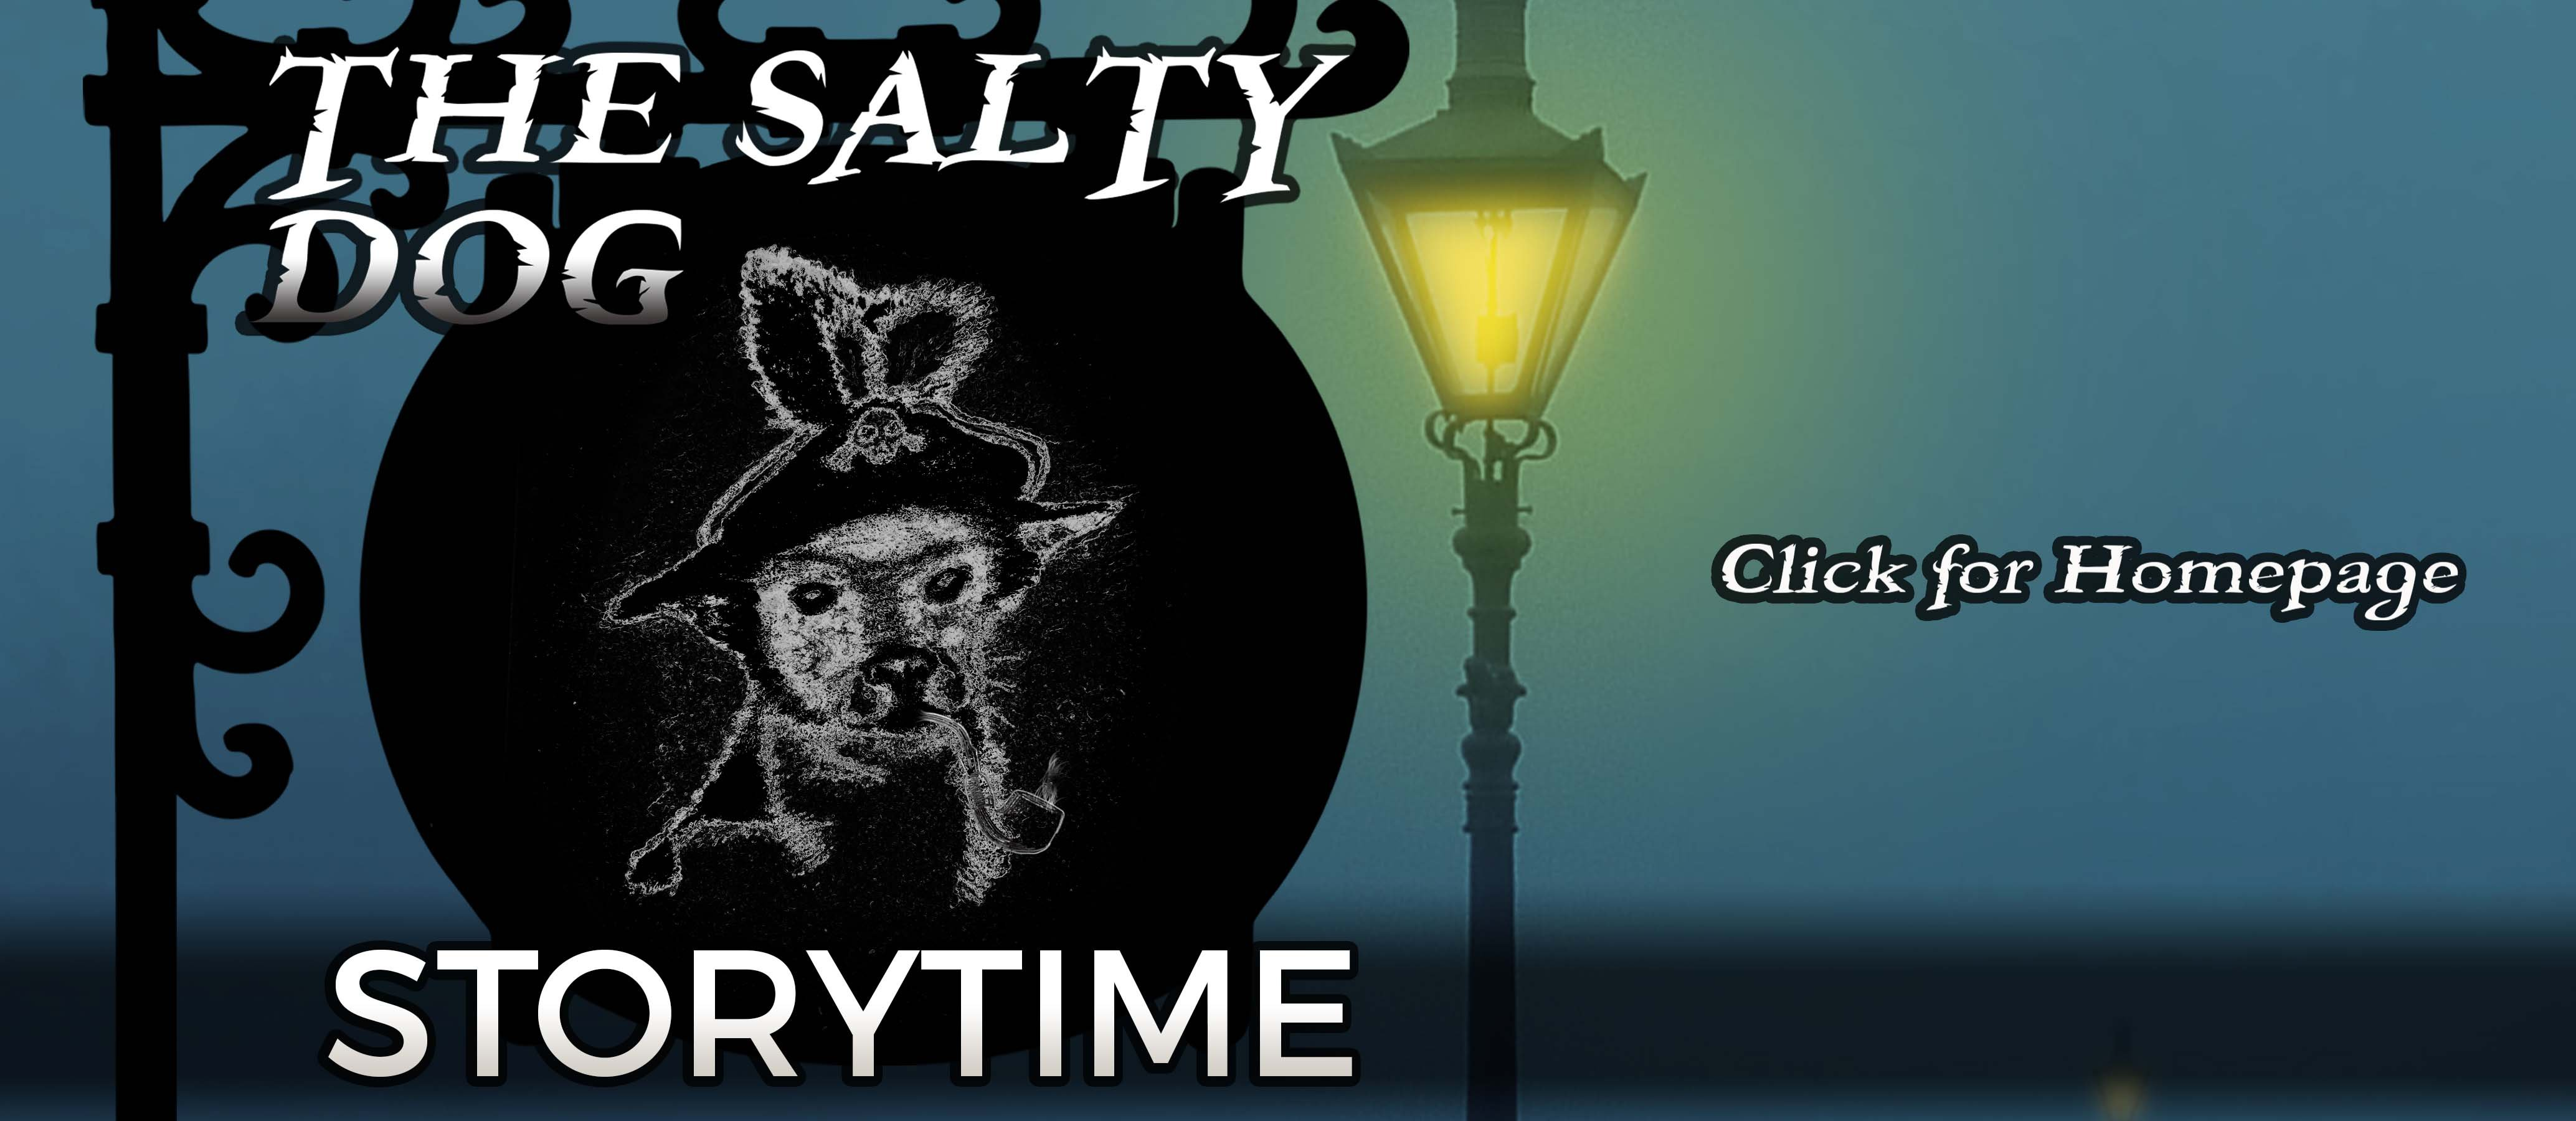 The Salty Dog Storytime